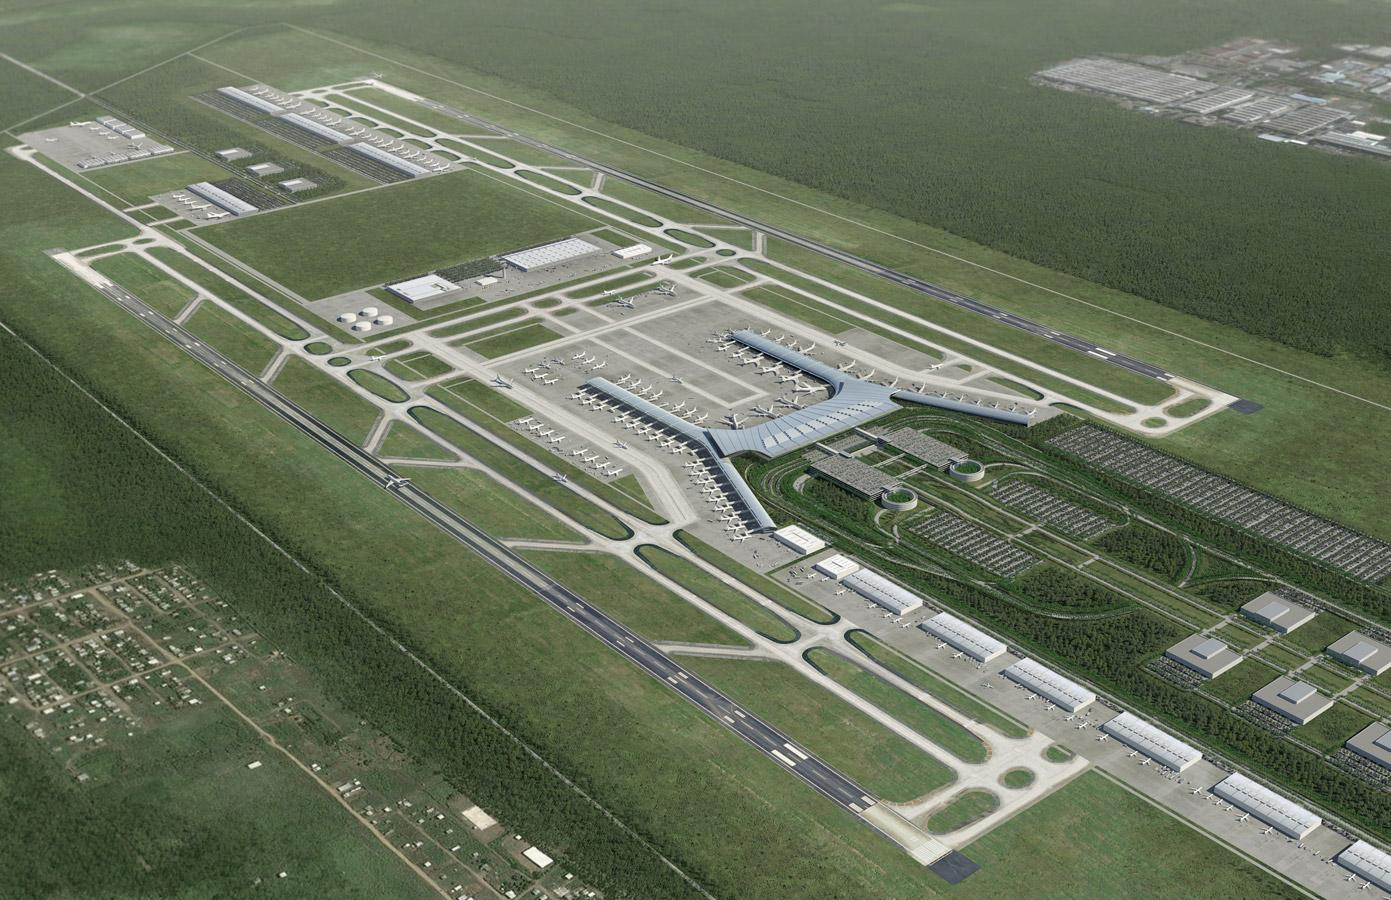 Work   Aerial Illustration - Airport Master Plan   Leif Peterson ...